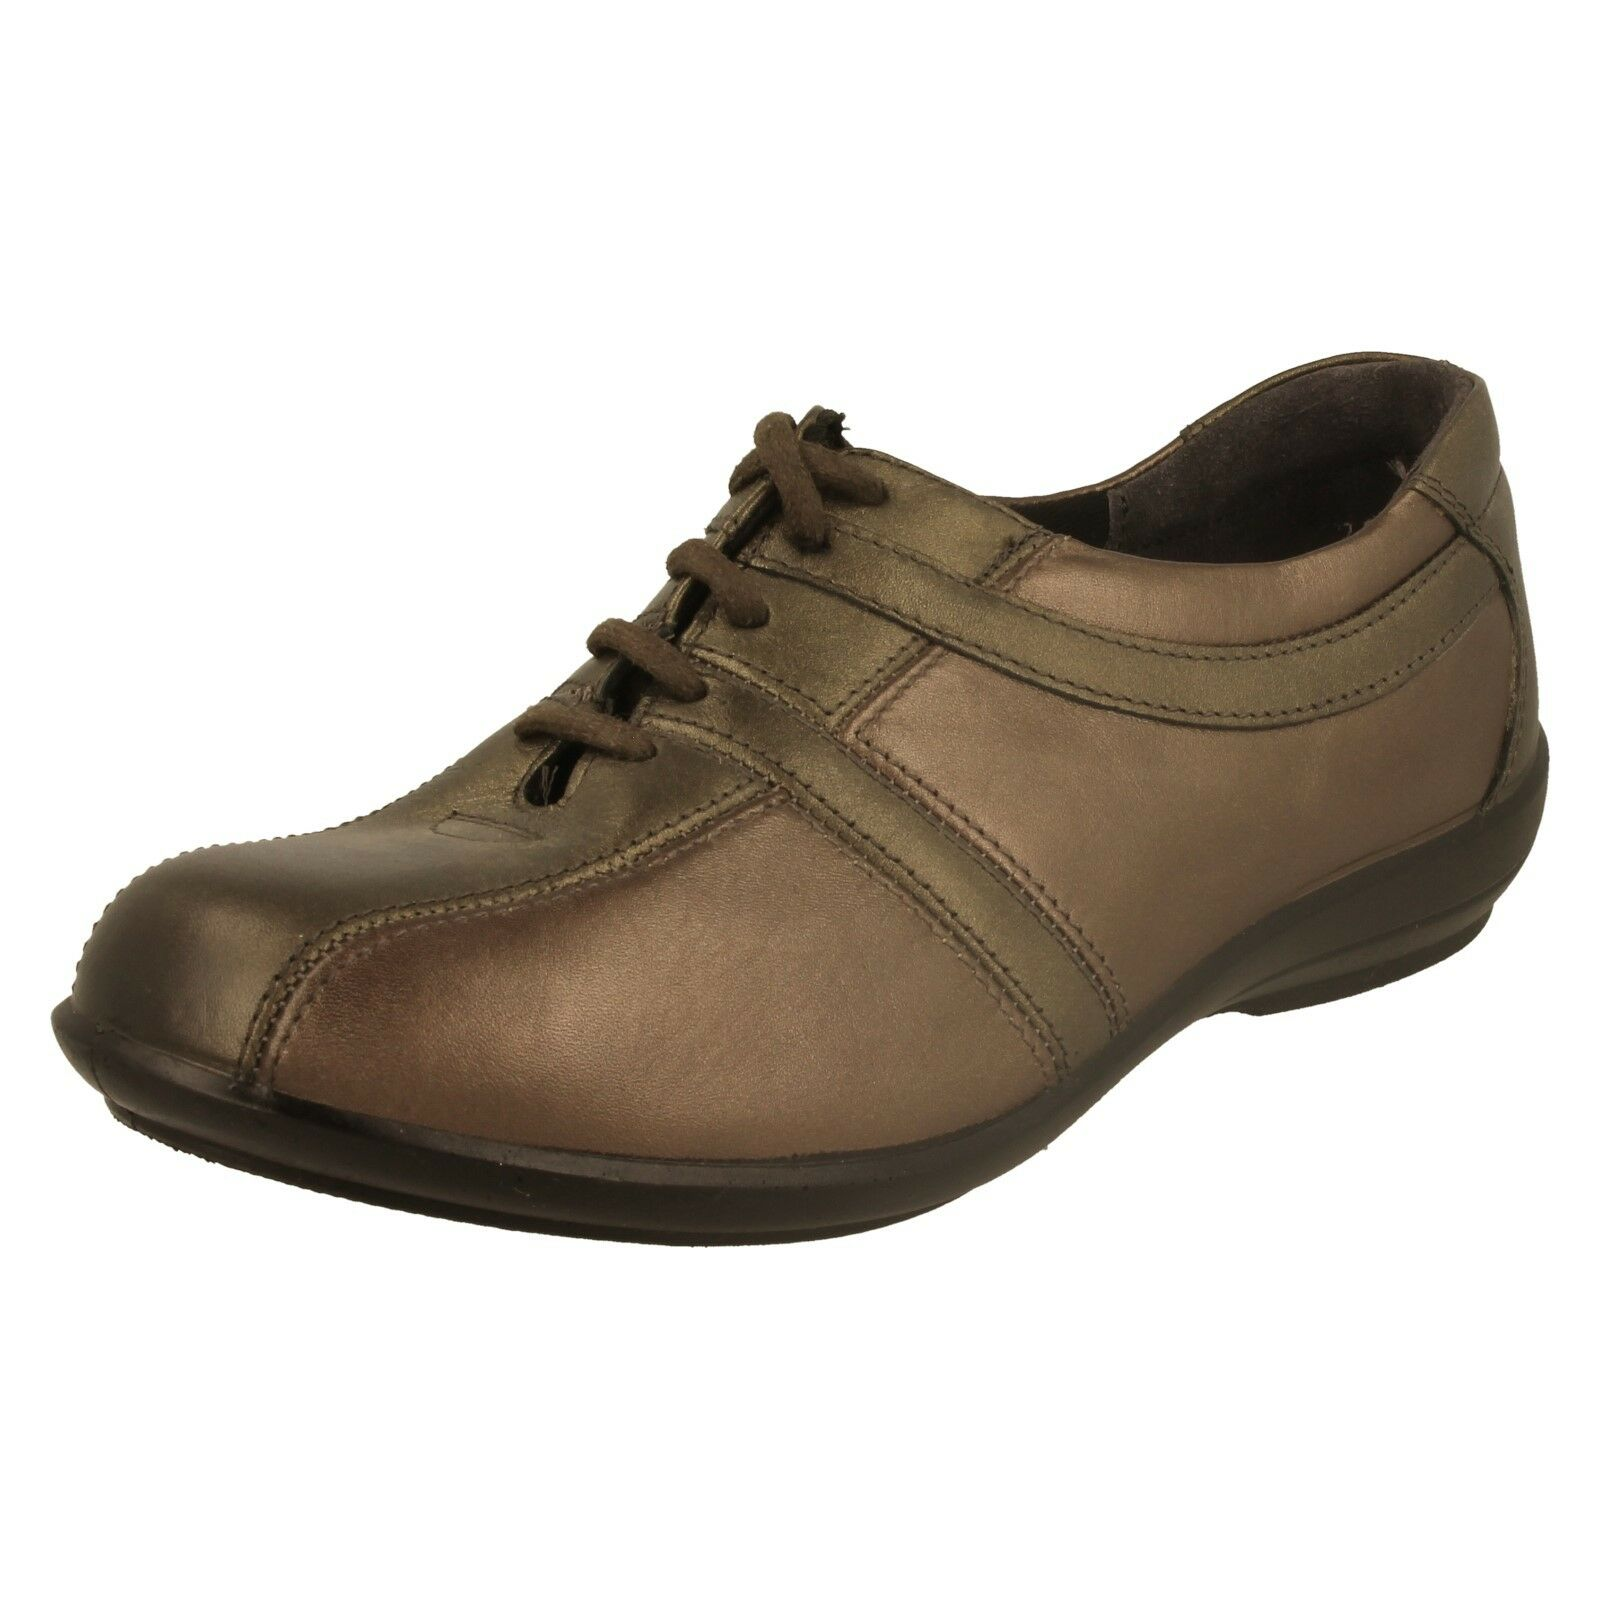 Ladies Easy B Ultra Wide Fitting shoes - 7285